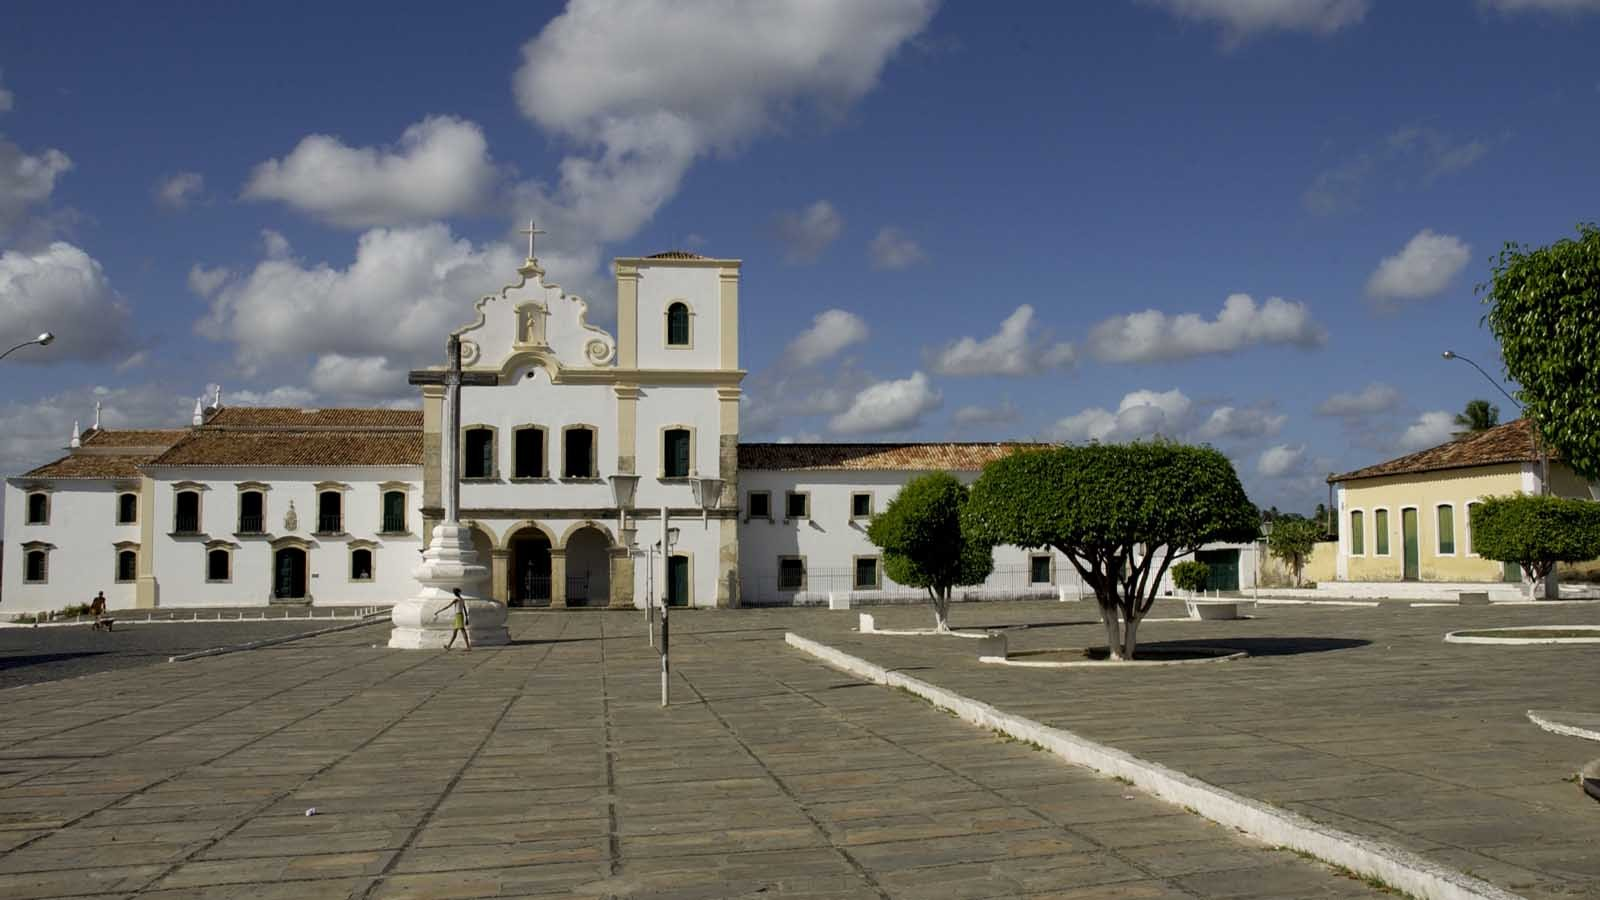 The old, colonial city of Sao Cristovao